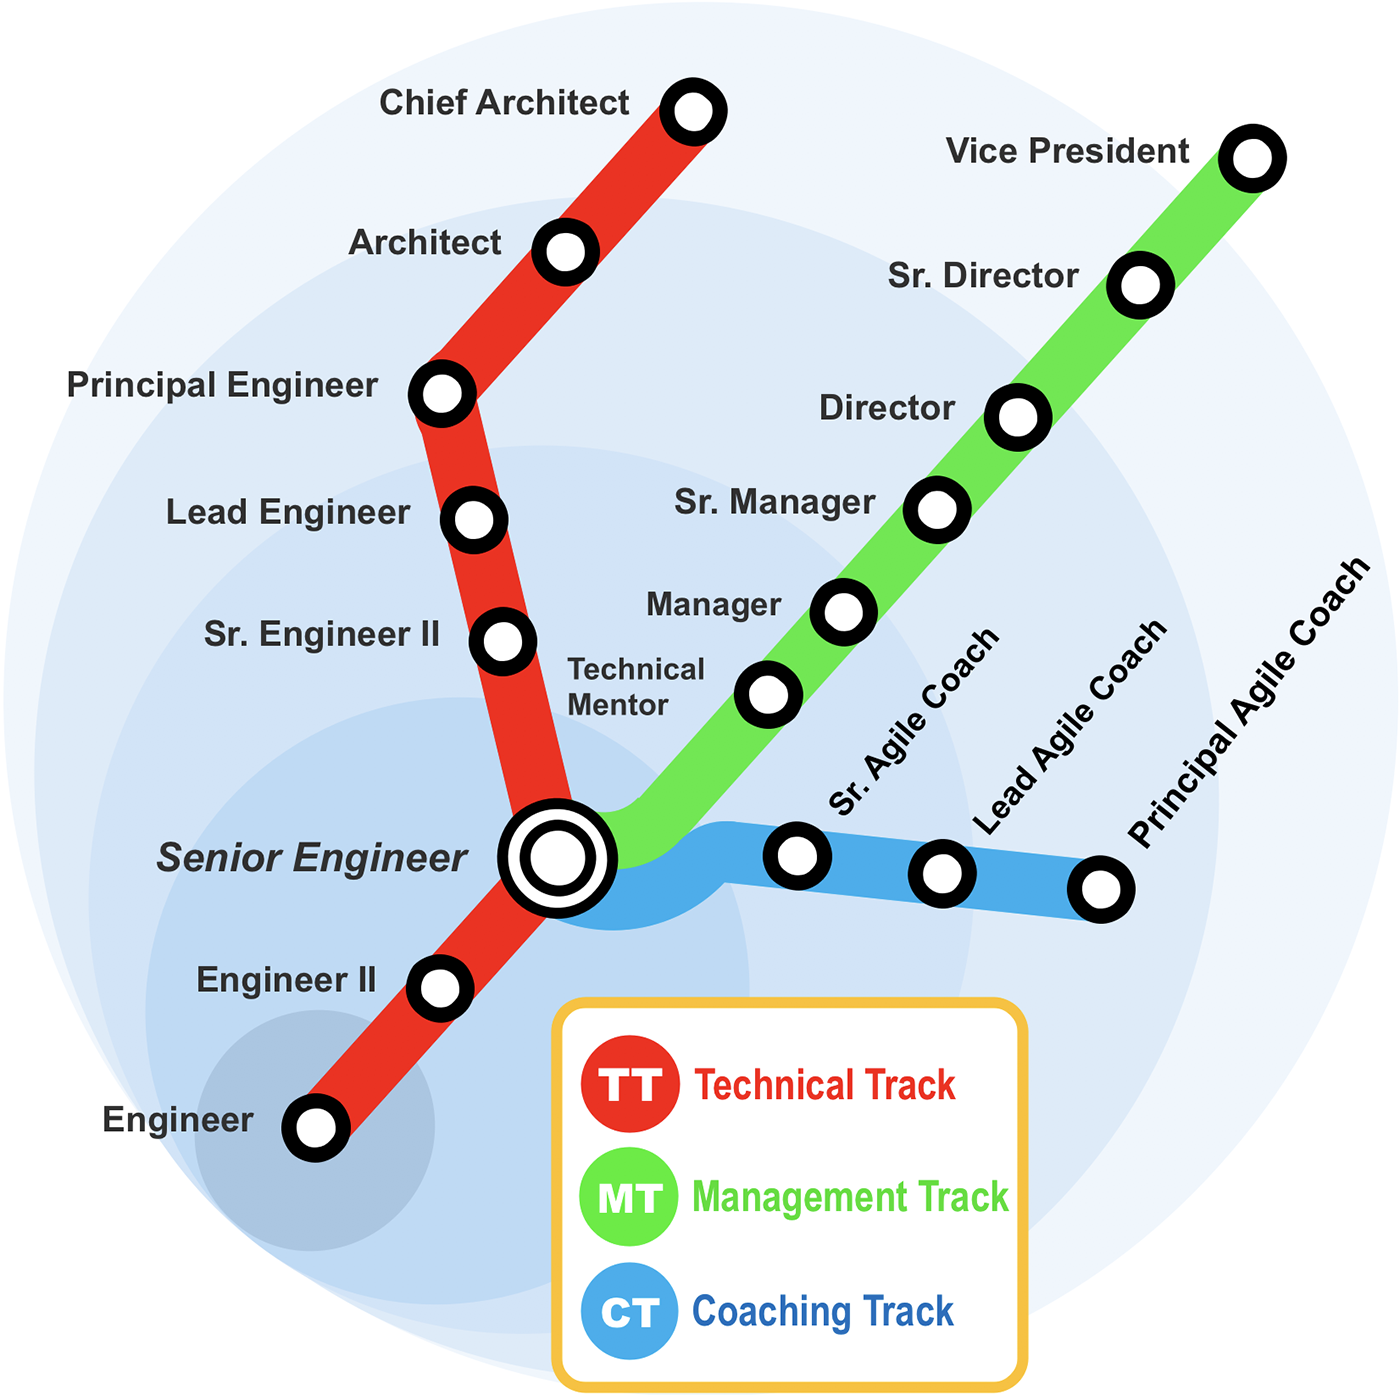 Traveling the Software Underground - Appian Engineering - Medium